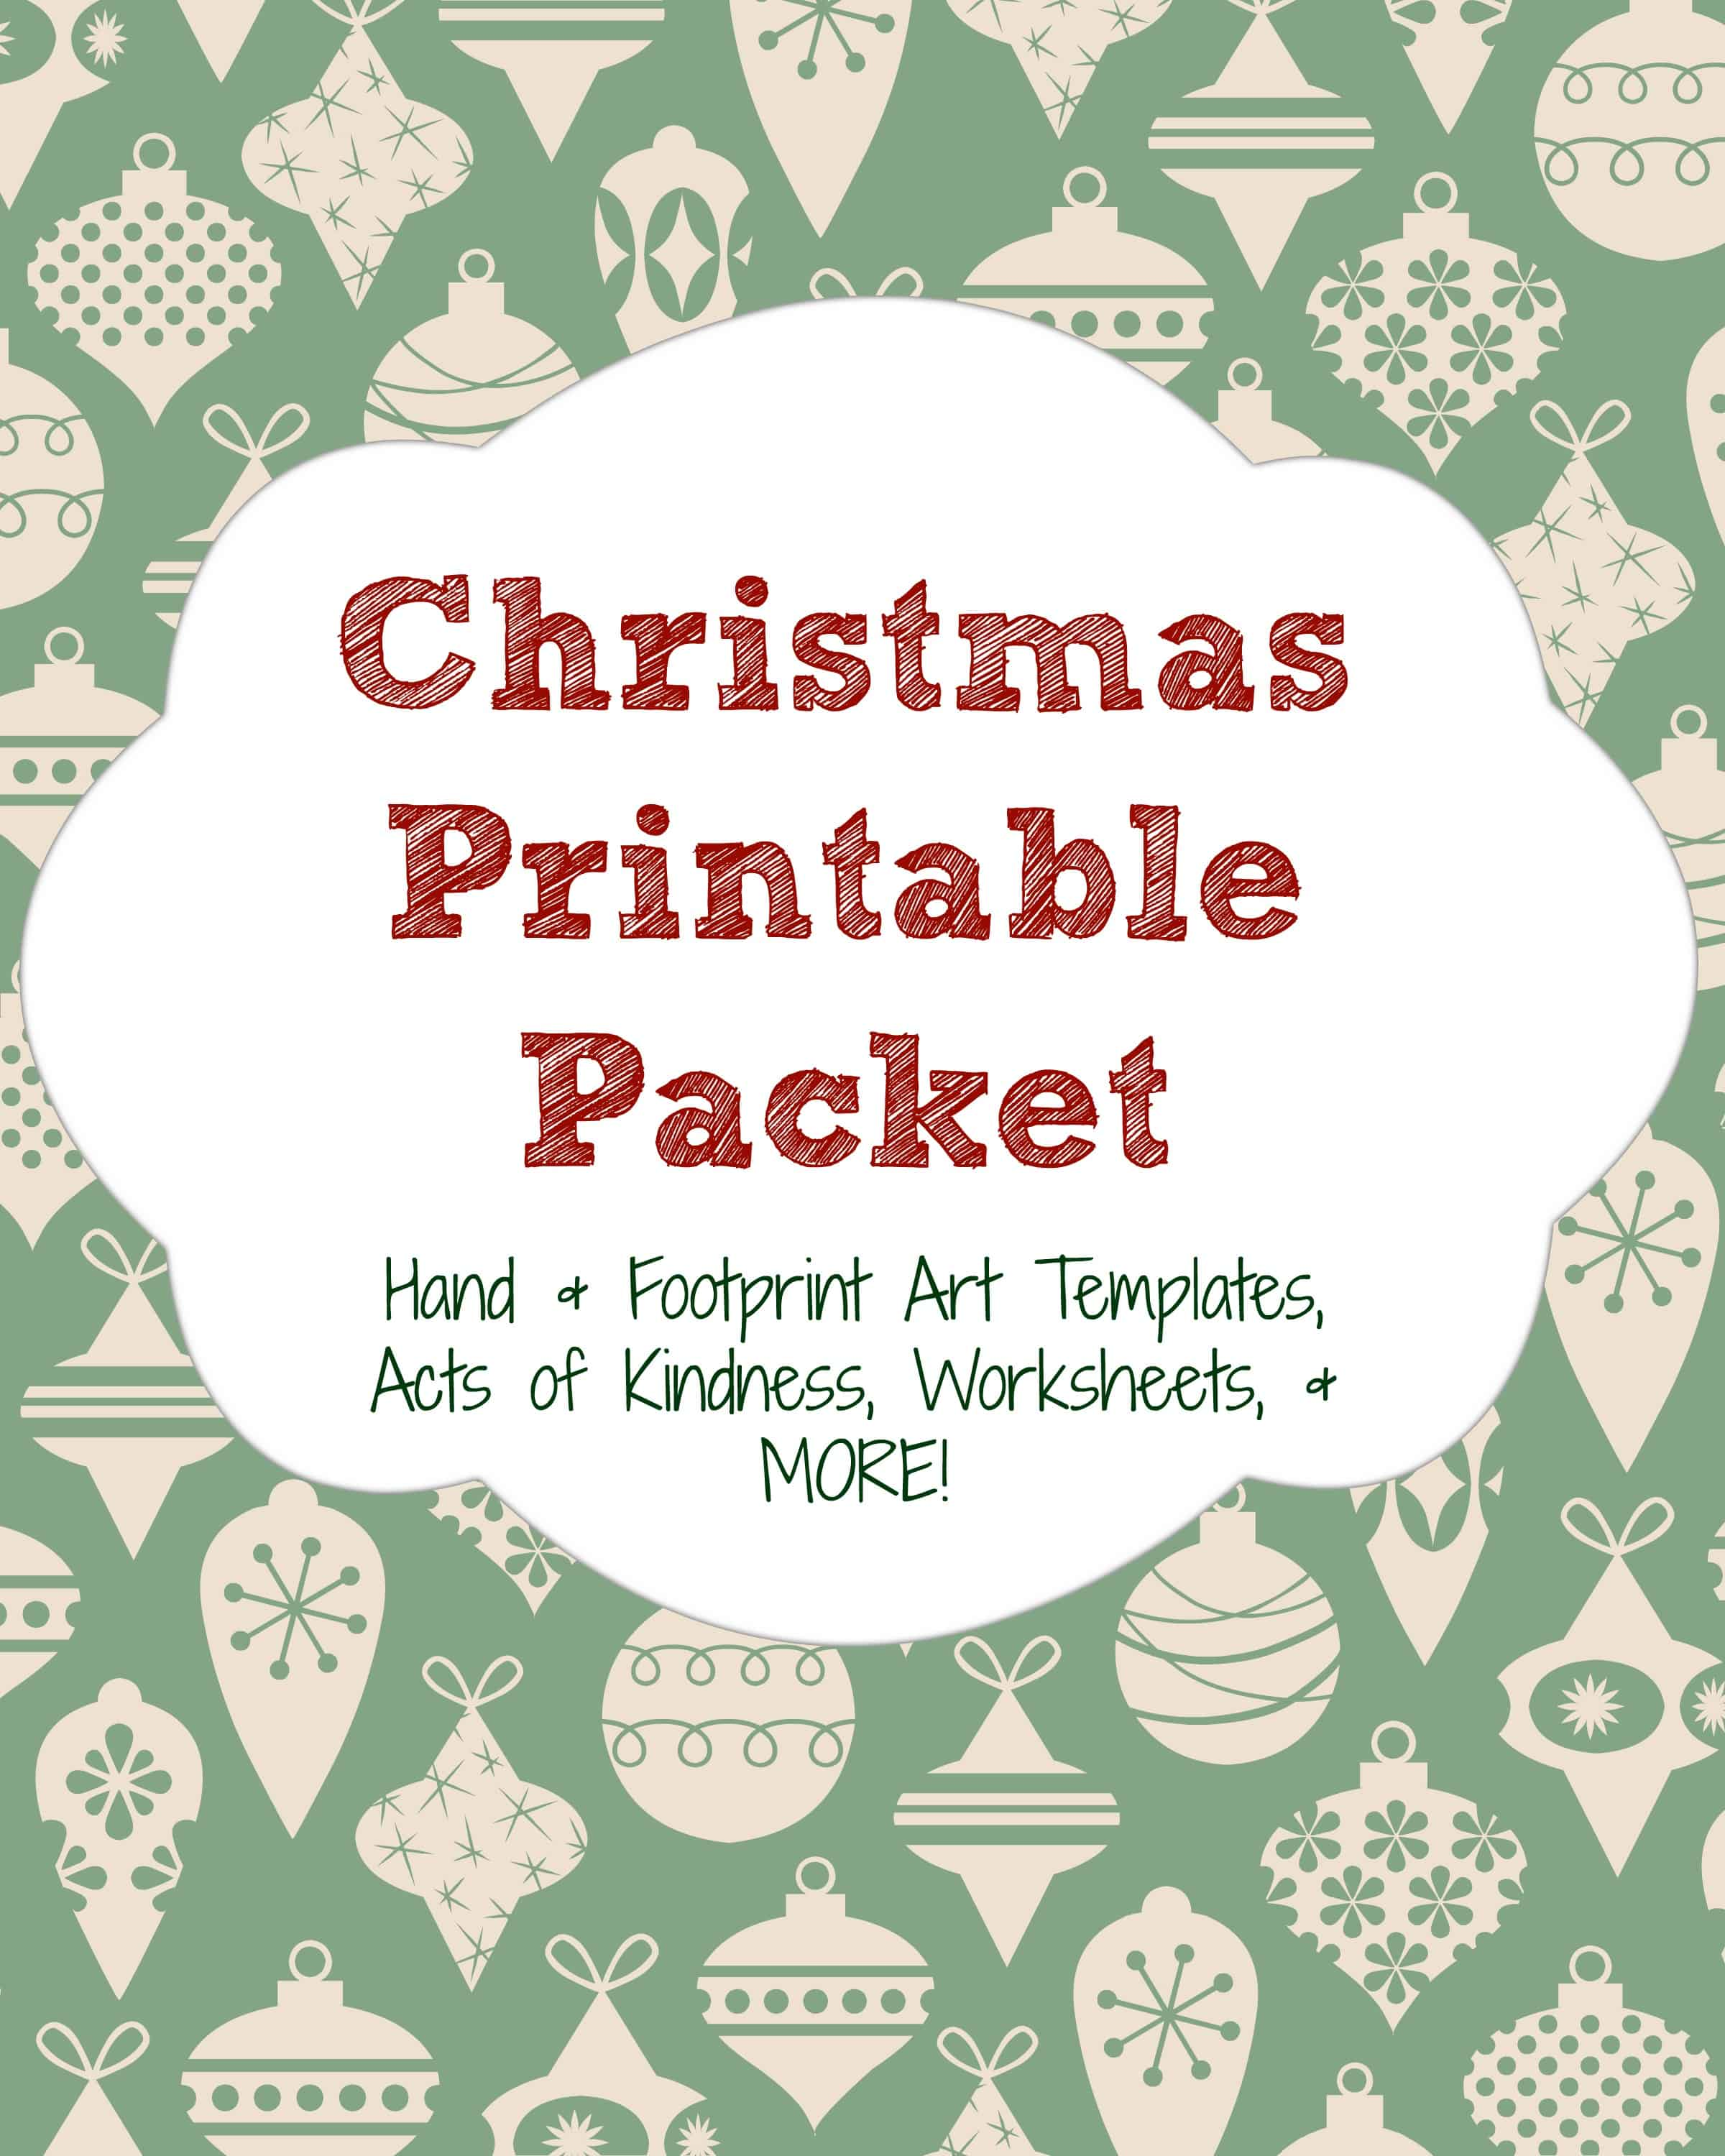 This packet includes worksheets, handprint & footprint art templates, acts of kindness activities, and more!